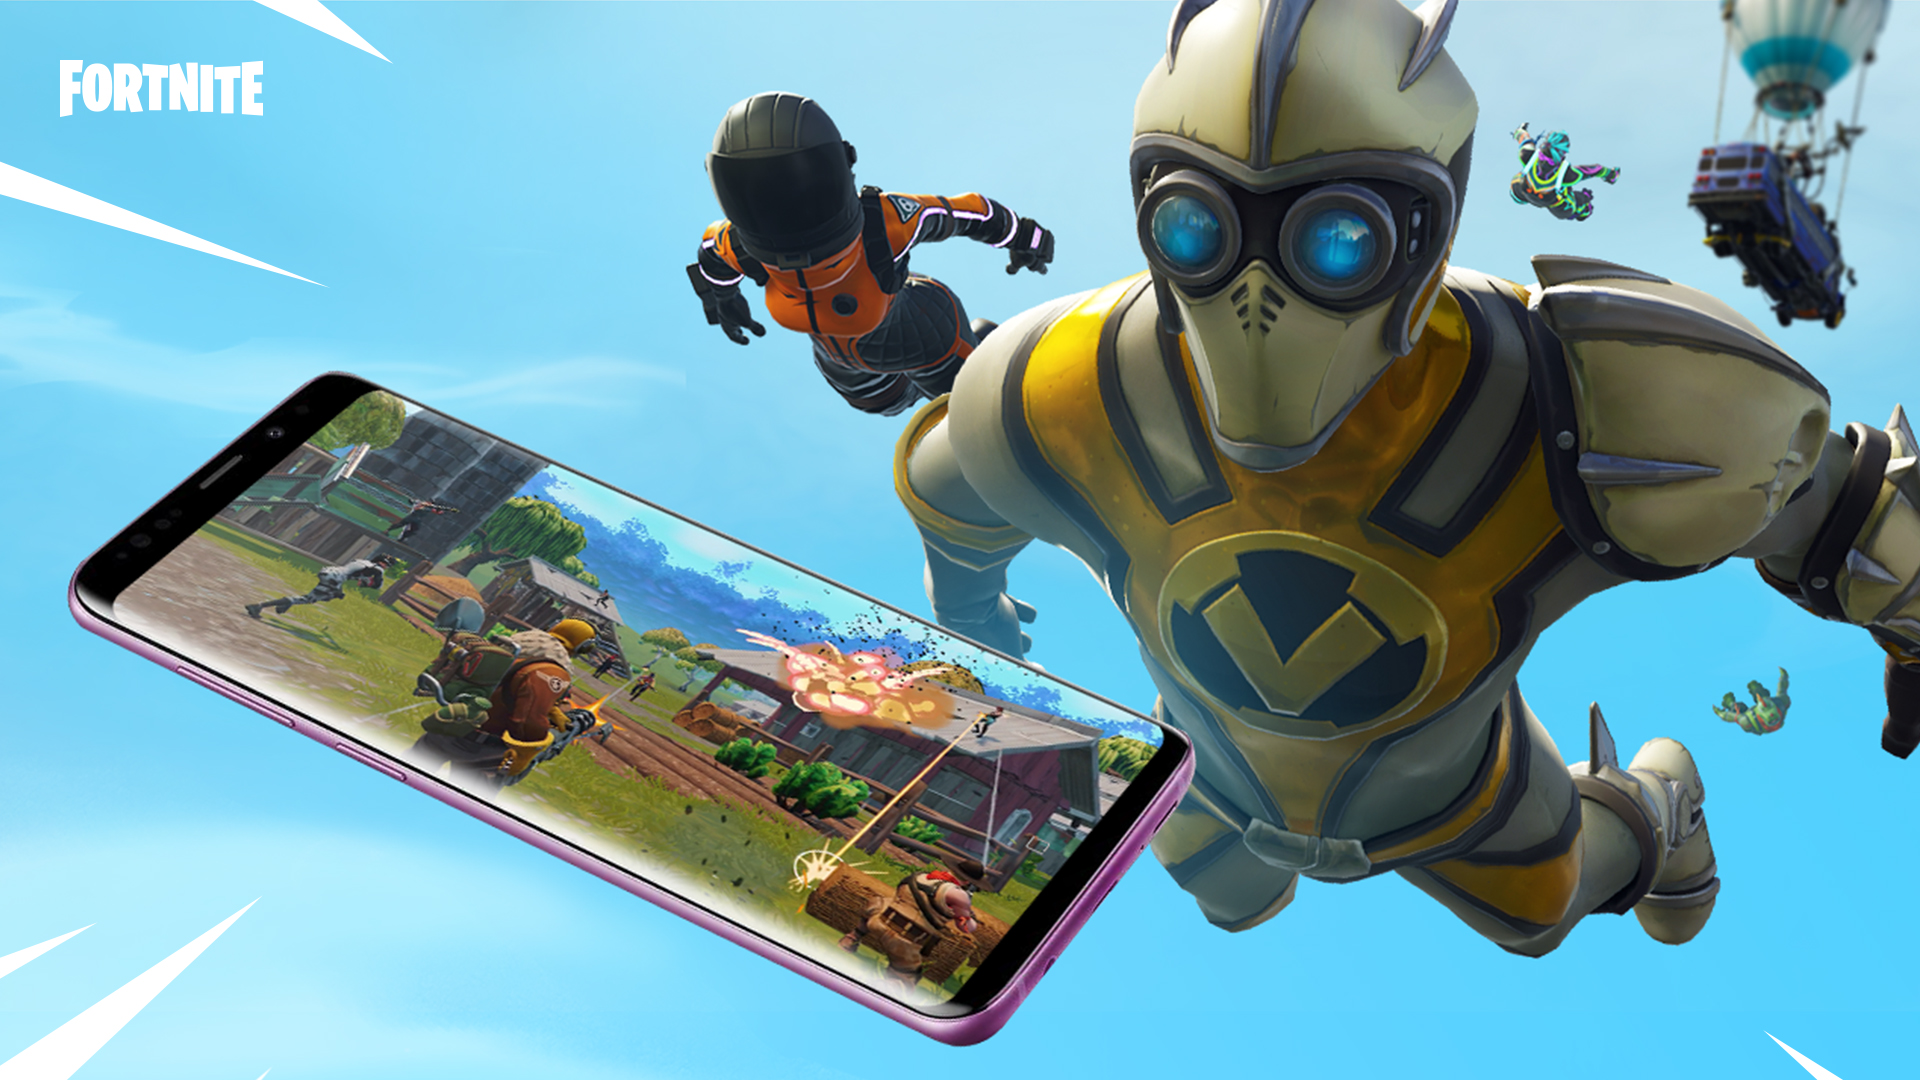 Apple seeks damages from Epic Games over 'Fortnite' contract breach